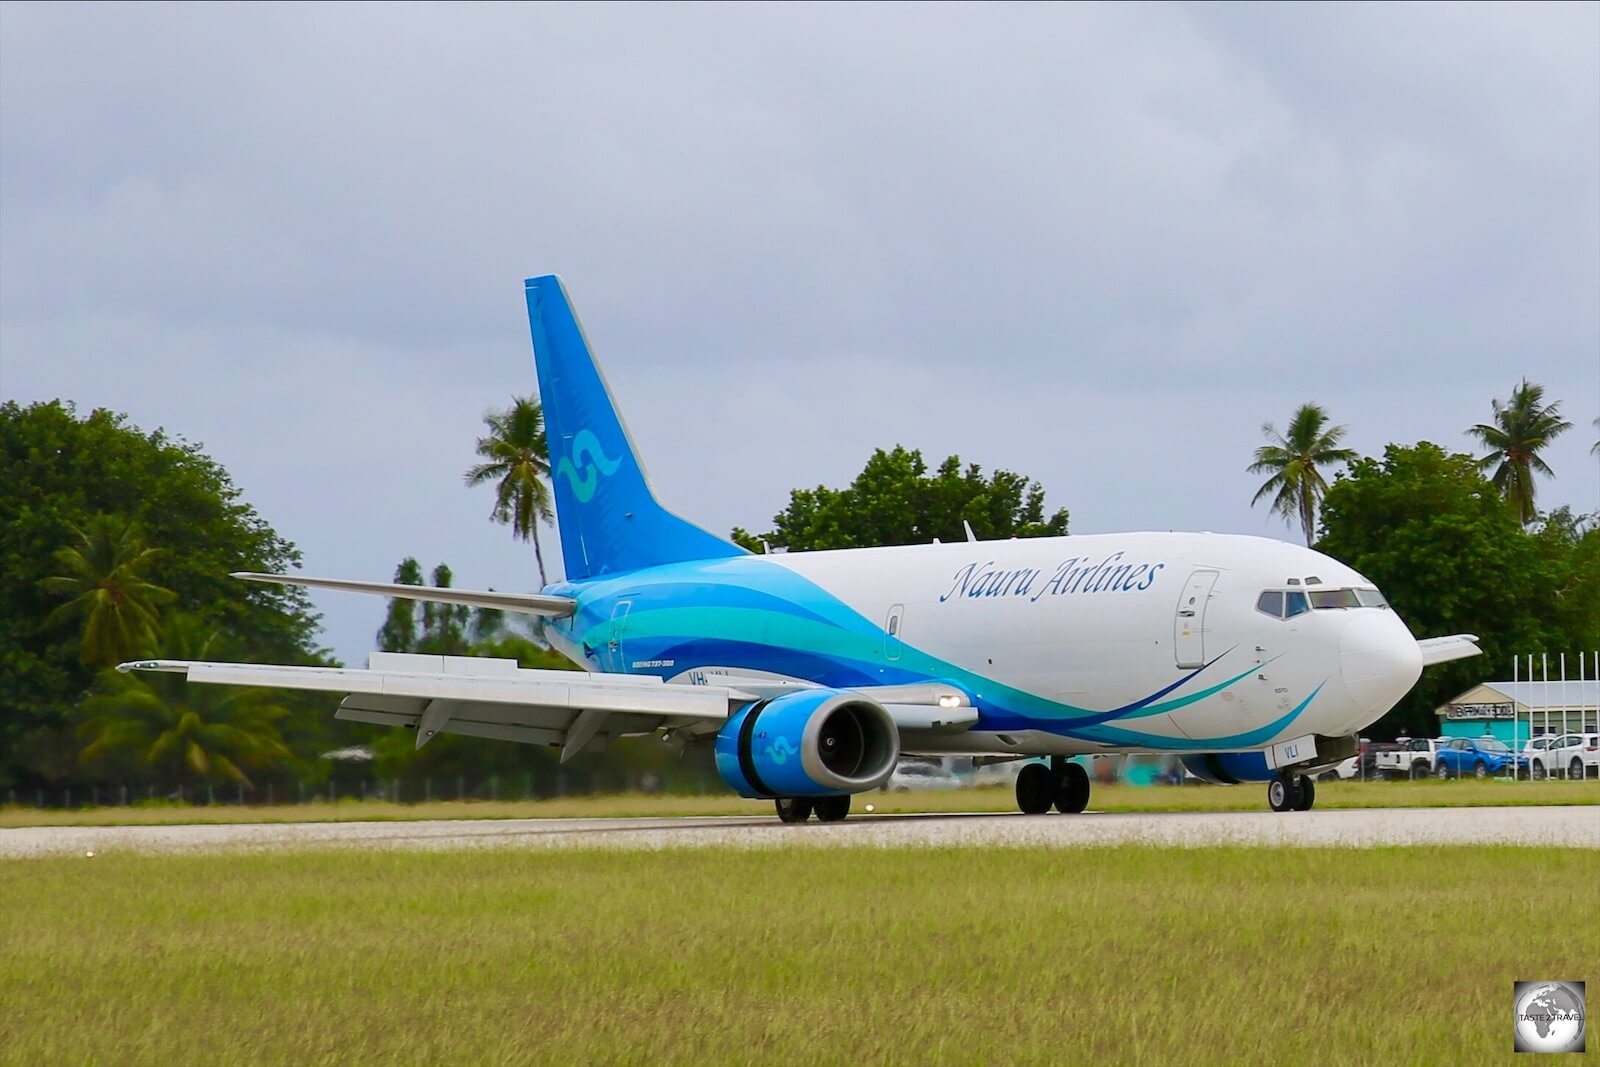 The Nauru Airlines cargo plane, a converted Boeing 737, arriving at Nauru airport.